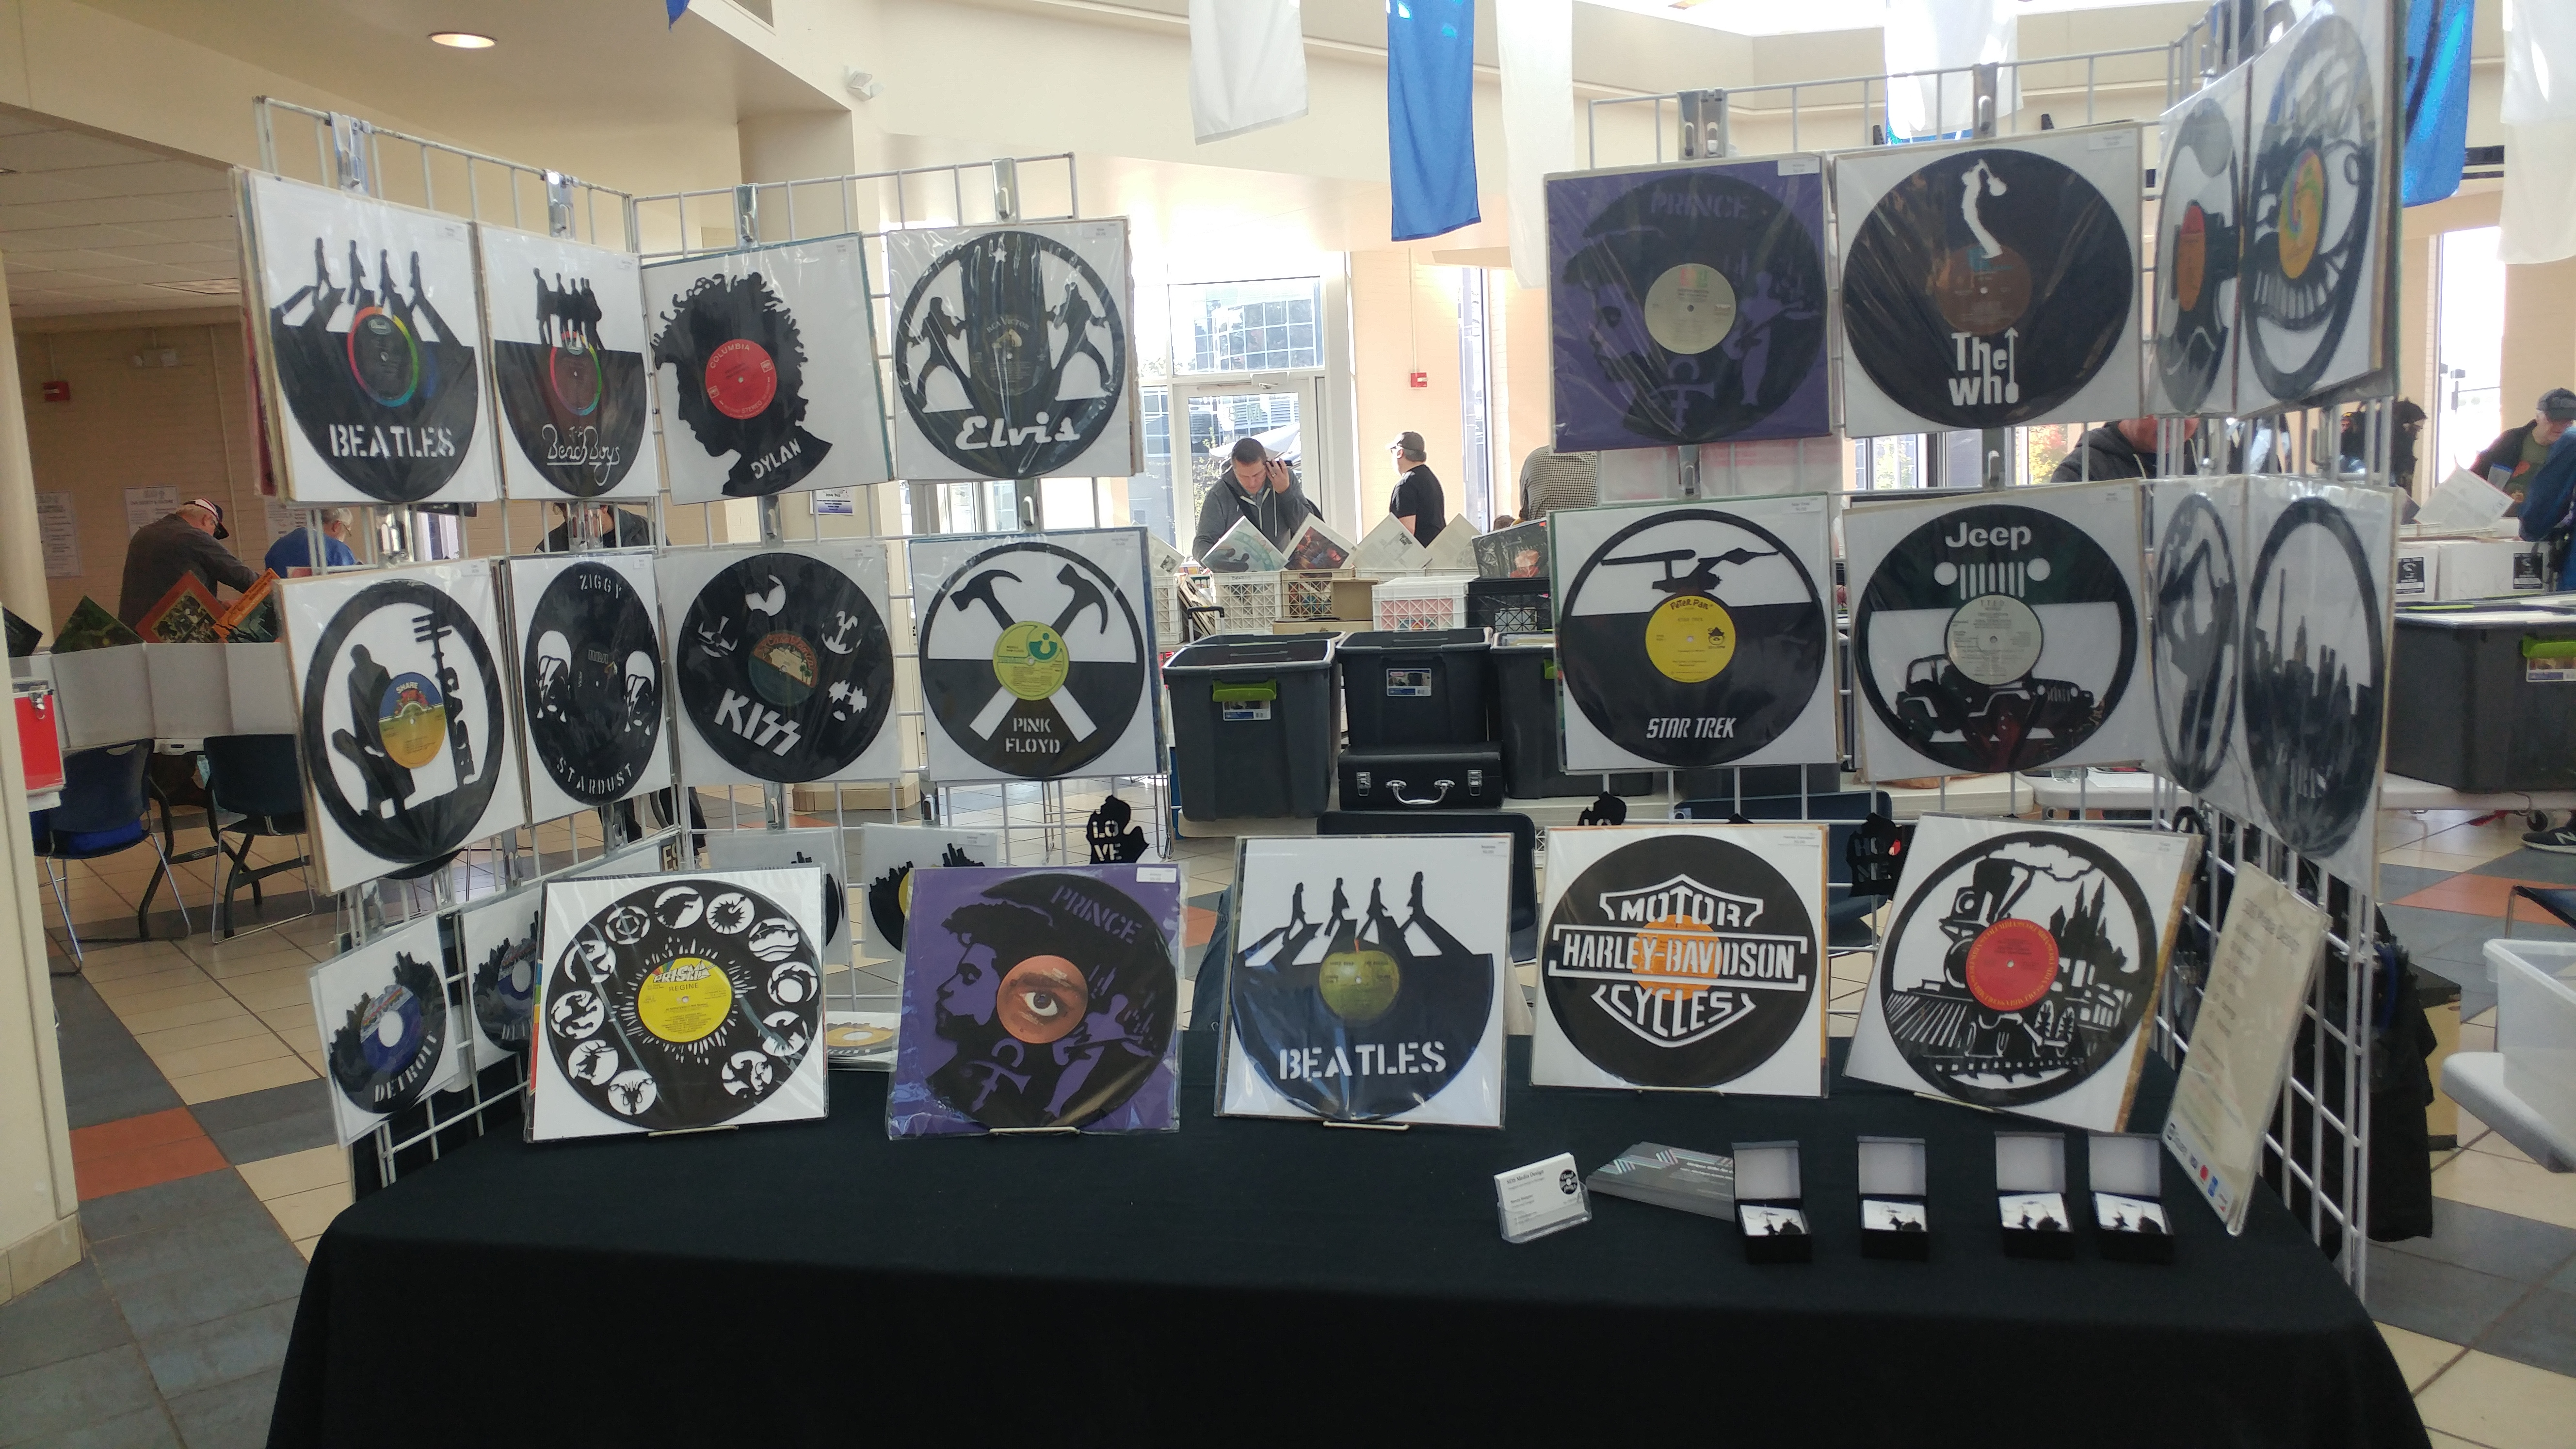 Photo shows a vendor booth selling vinyl records